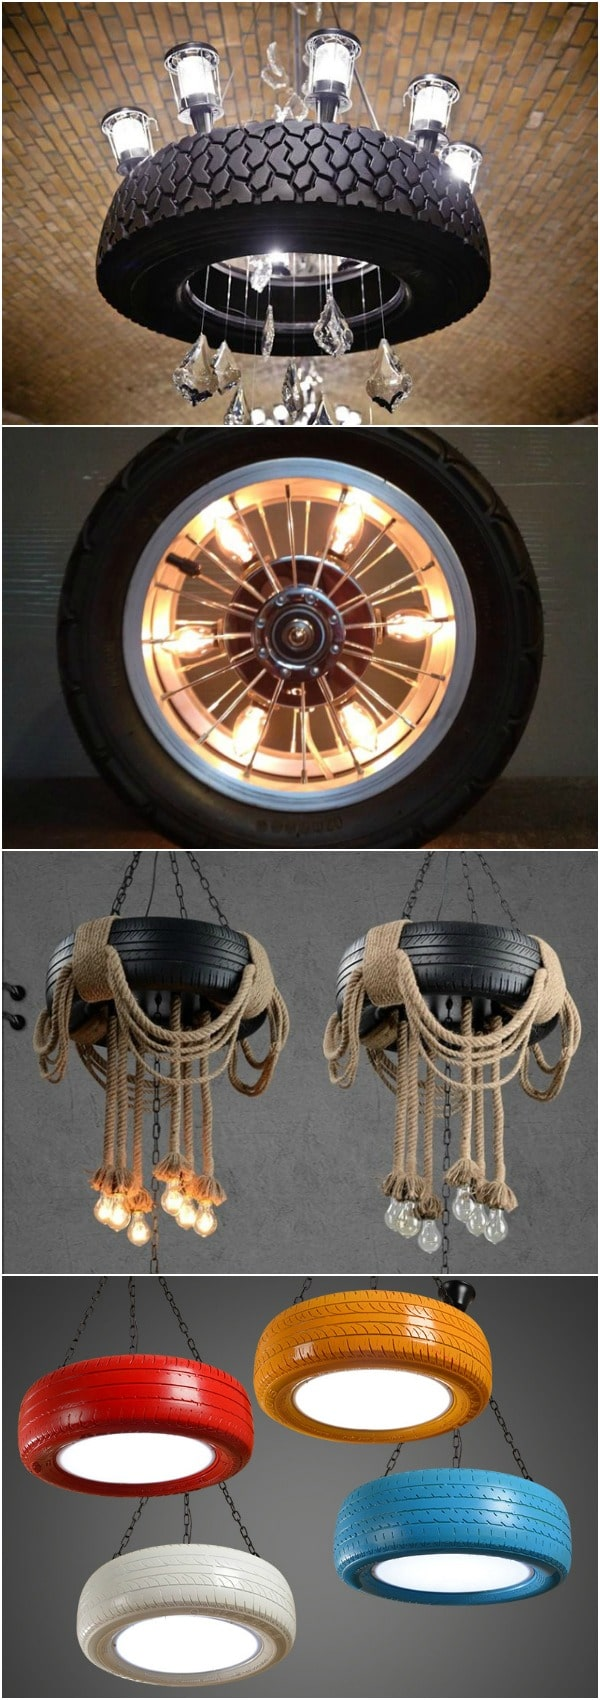 10 Amazing Lamps Selection From Diy Tire Projects Id Lights